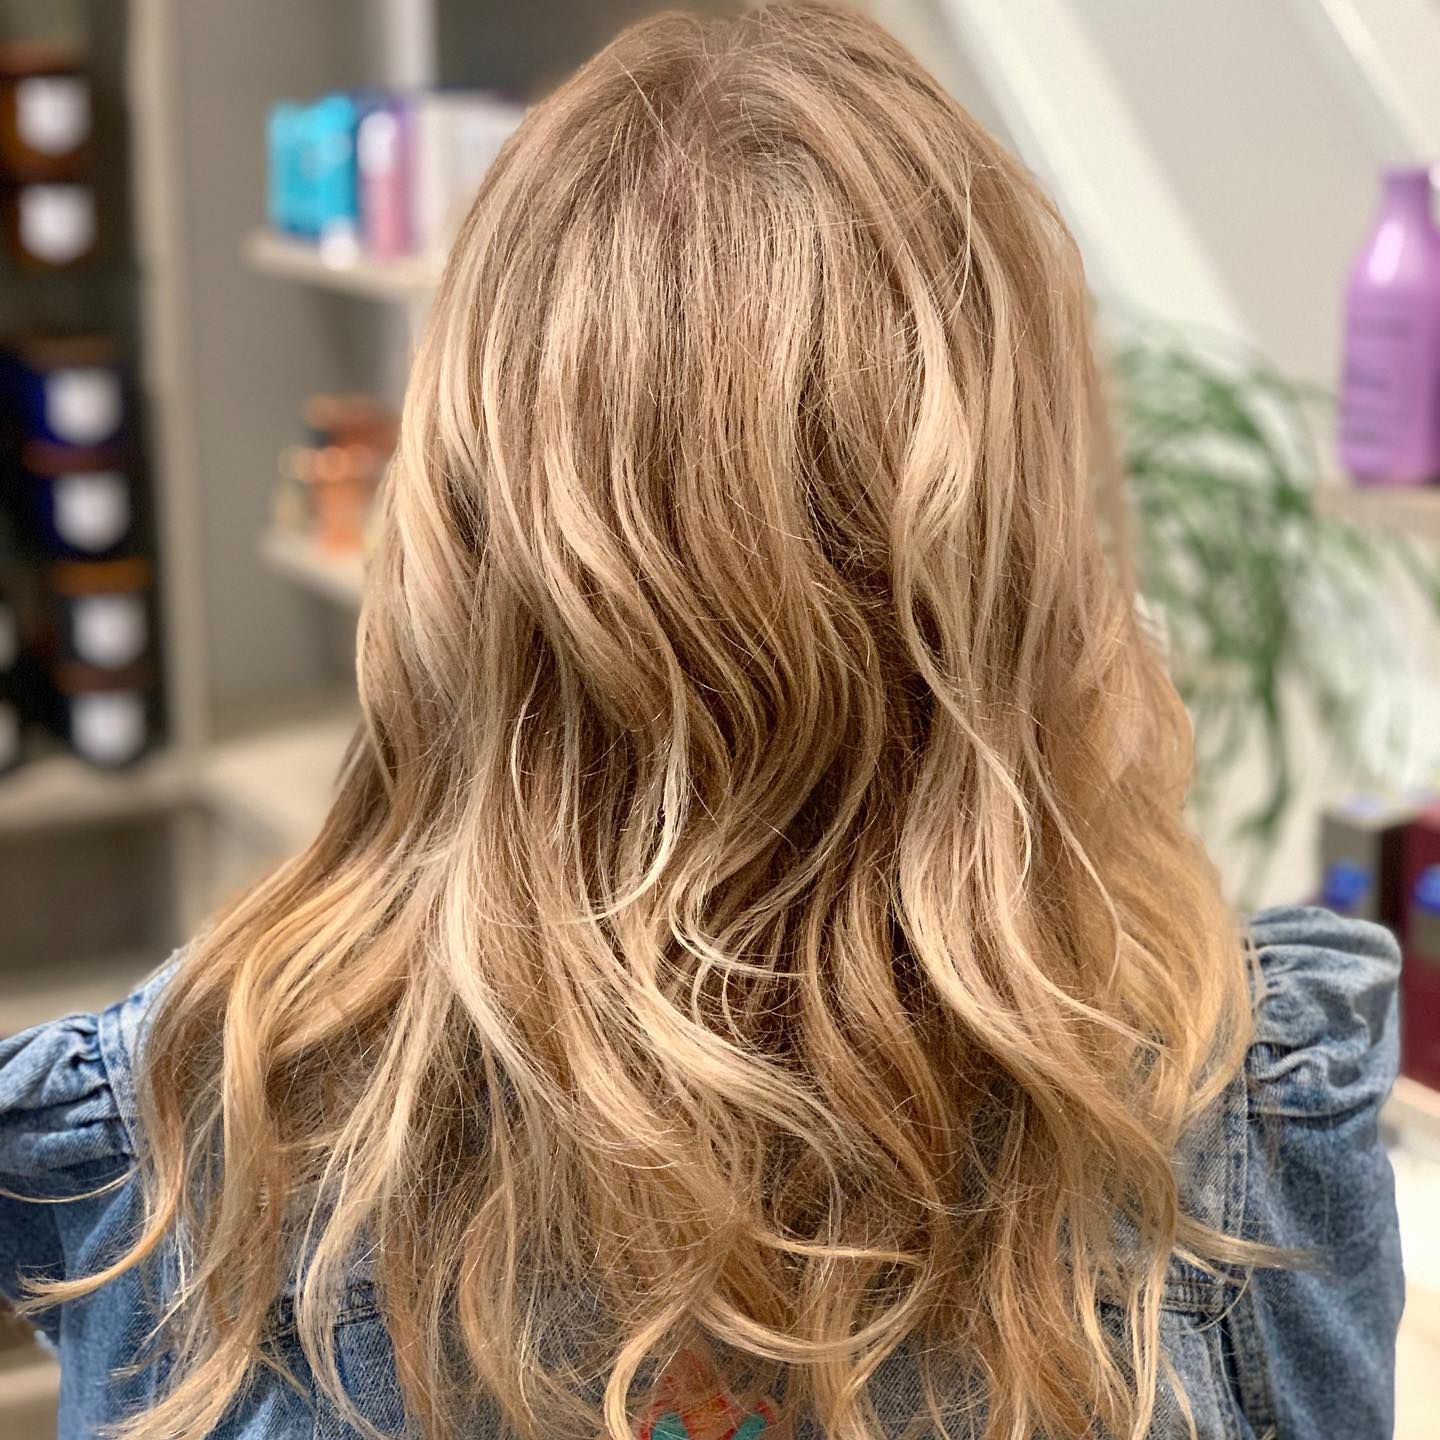 Balayage By Our Team In Austin Blondehair Salon Austinsalon Hair Salon Hair Beauty Hair Inspiration